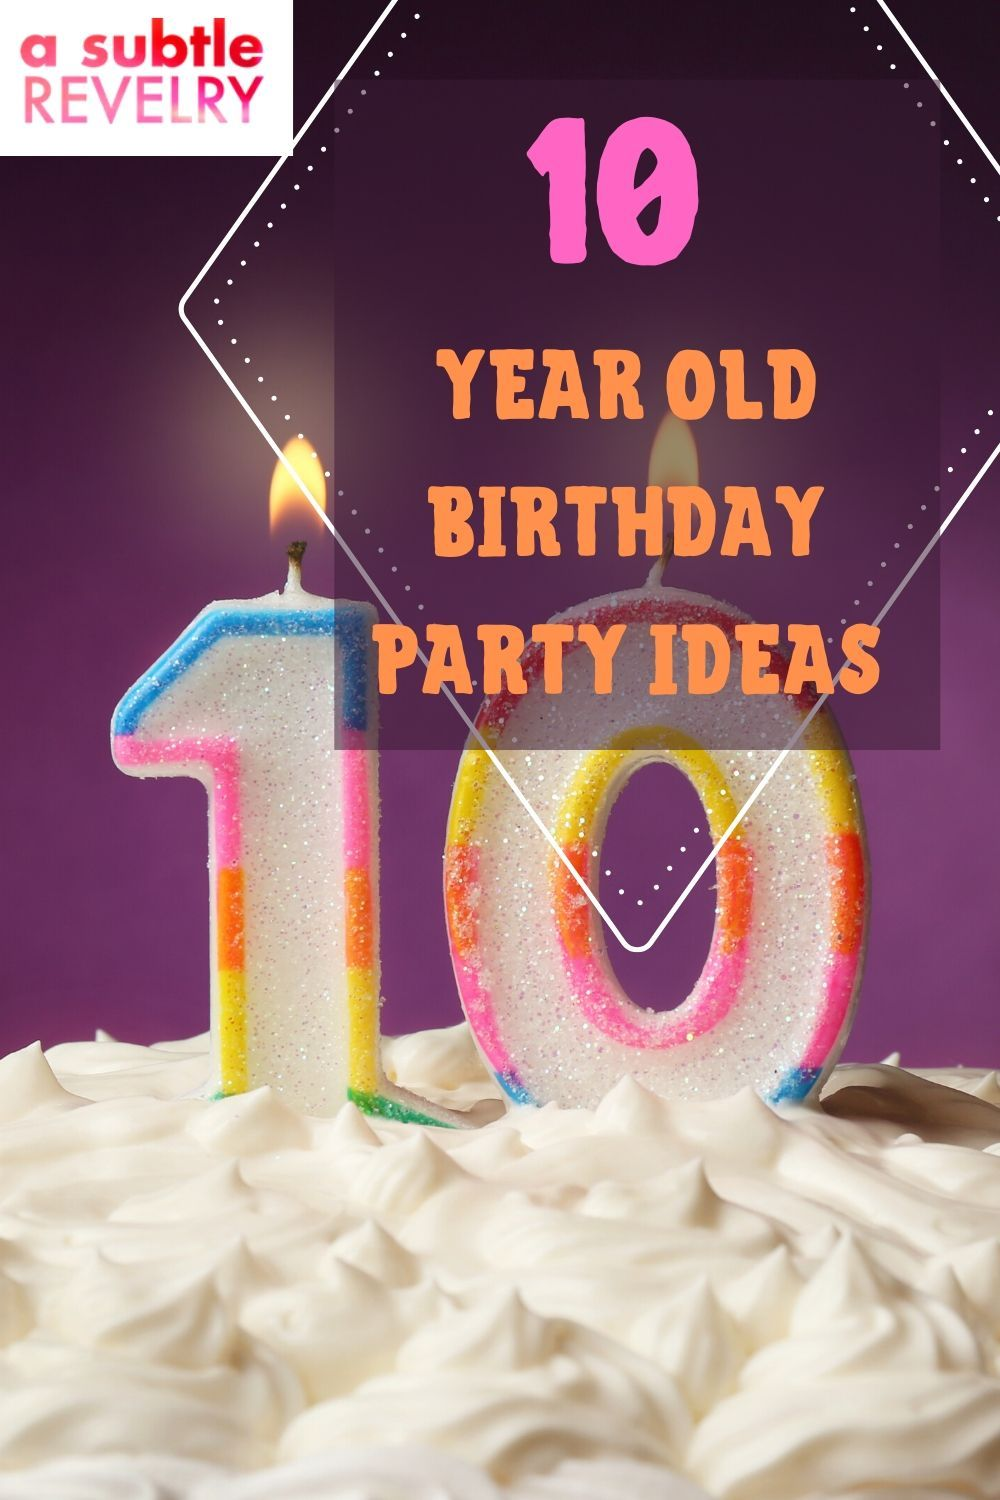 10 Year Old Birthday Party Ideas For Your Kids In 2020 Winter Birthday Parties Girls Party Themes Boy Birthday Parties